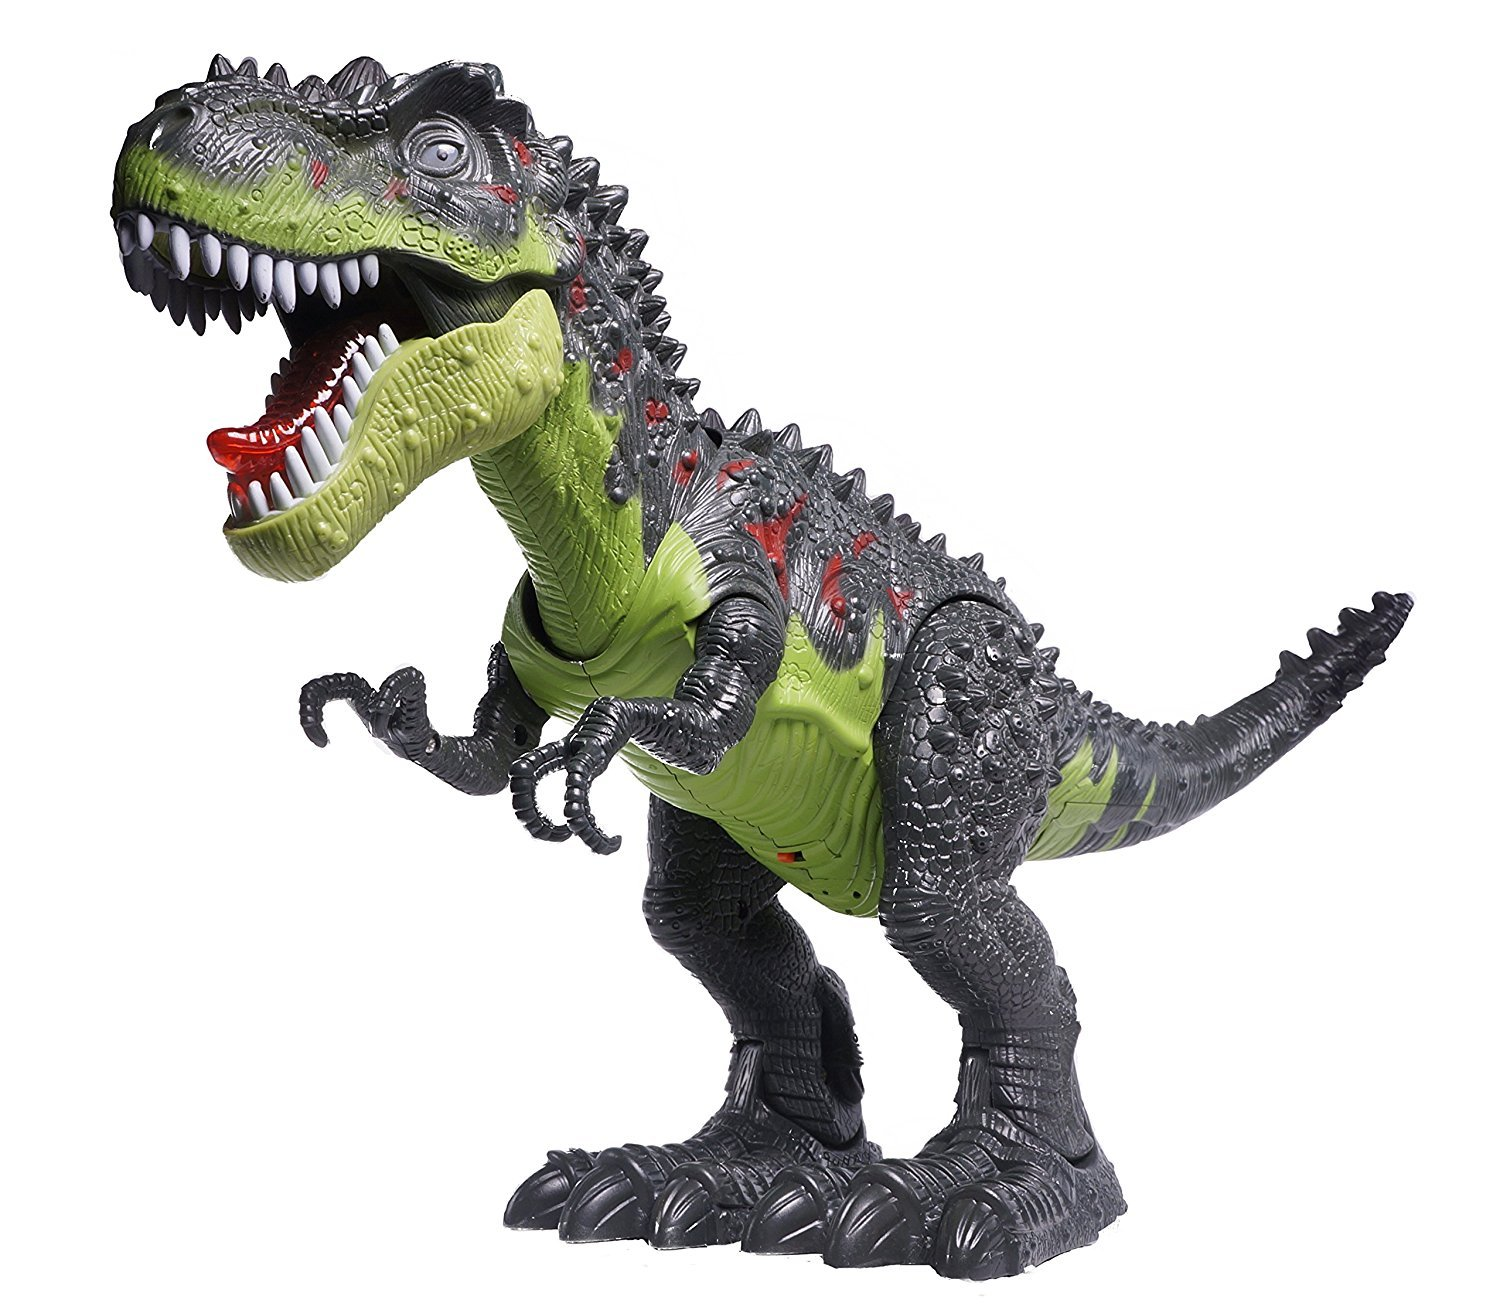 CifToys Tyrannosaurus Rex Dinosaur Walking Dinosaur Toys Kids Toy Realistic Jurassic Trex Dinosaur Action Toy Figure Walking Moving Glowing Dino Figure (Green) by CifToys (Image #1)